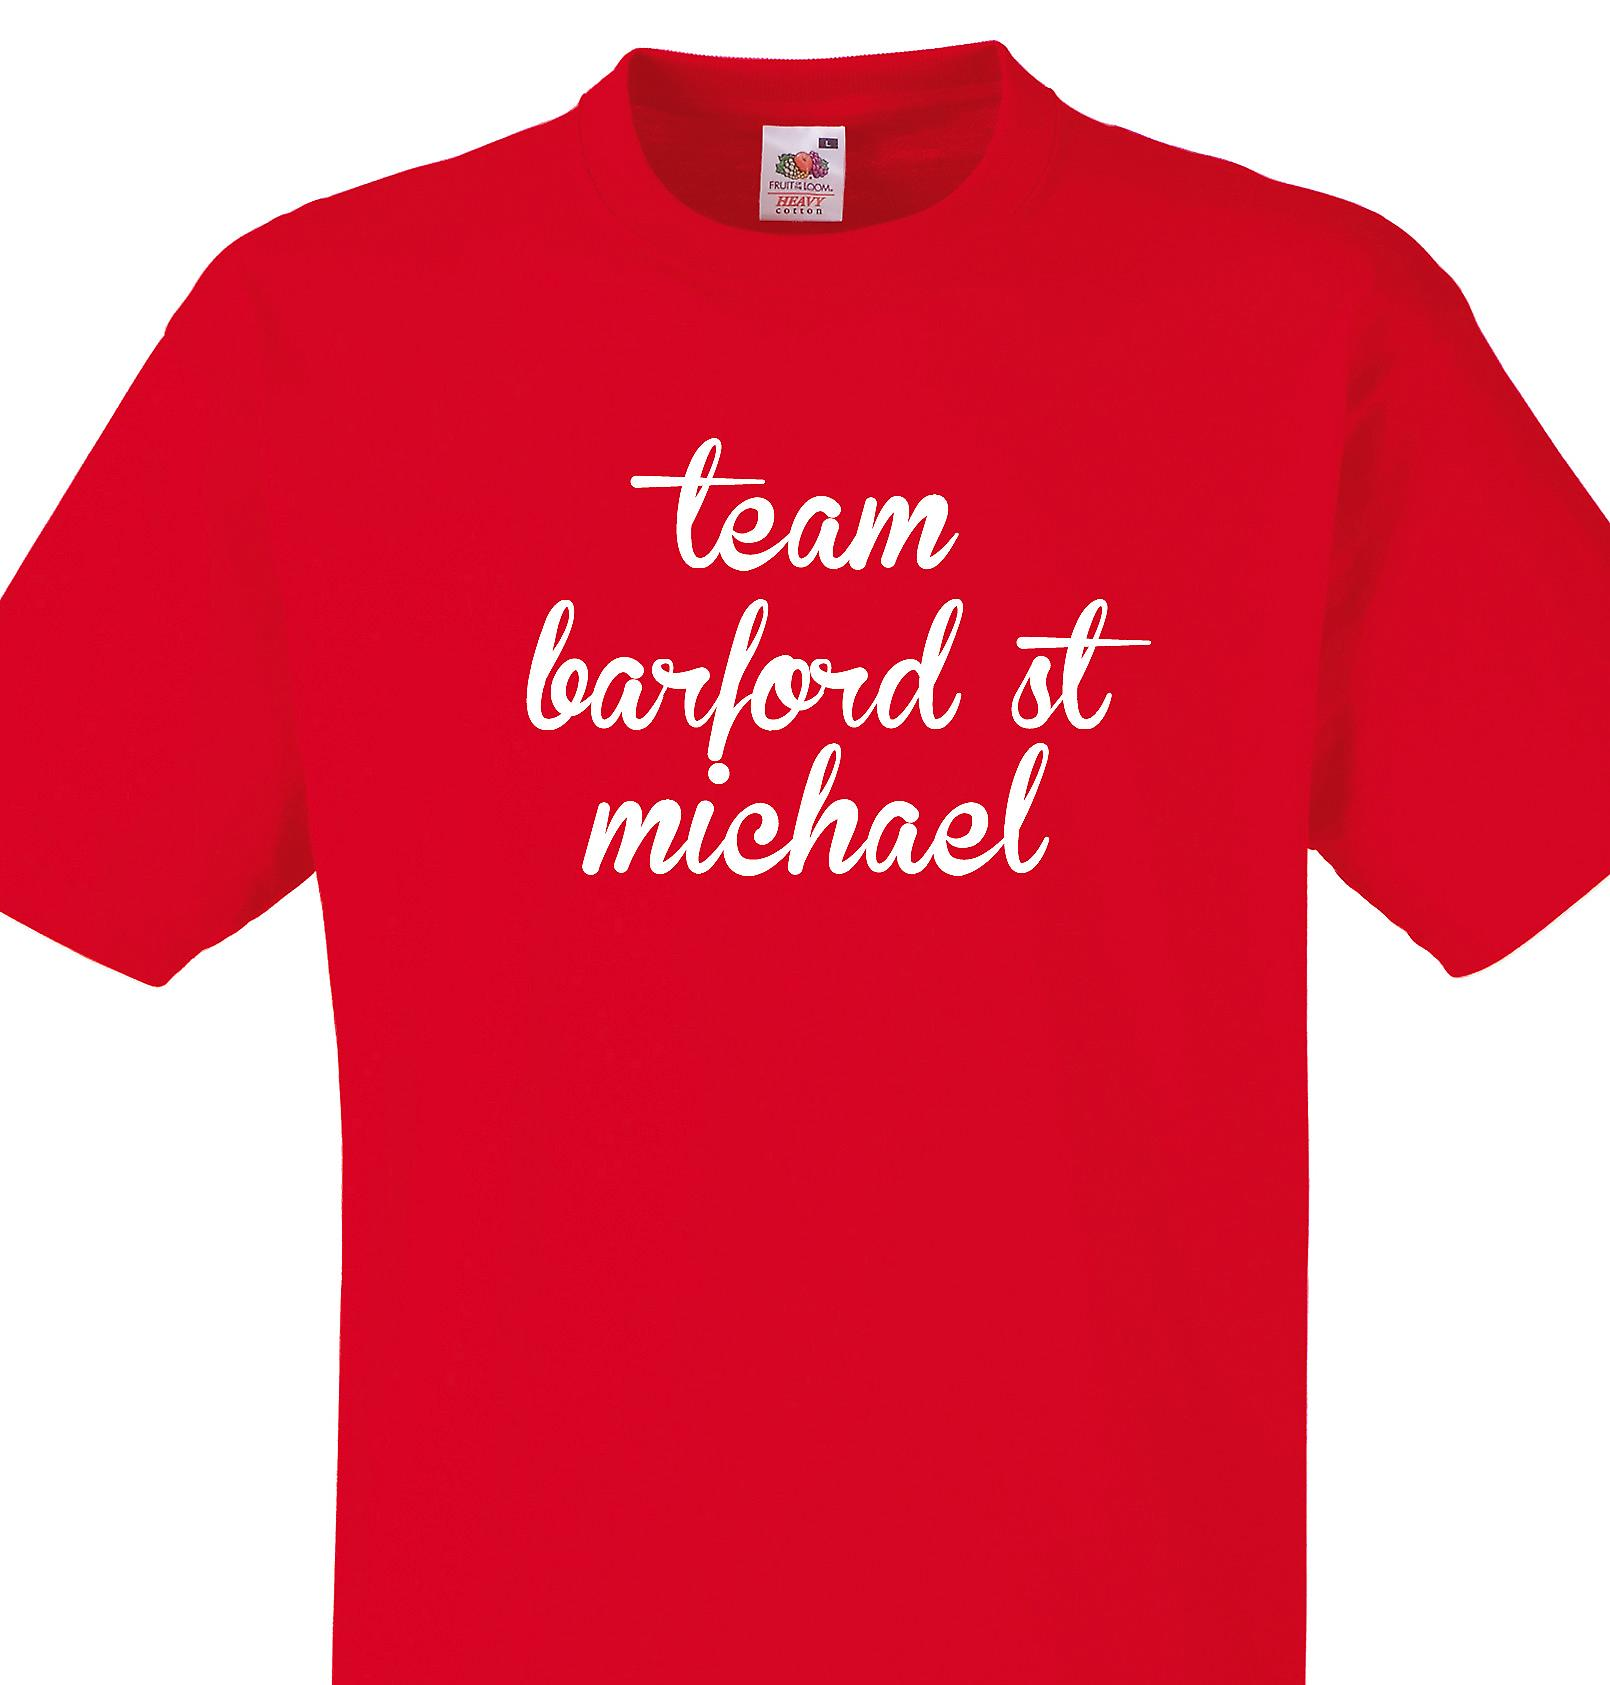 Team Barford st michael Red T shirt